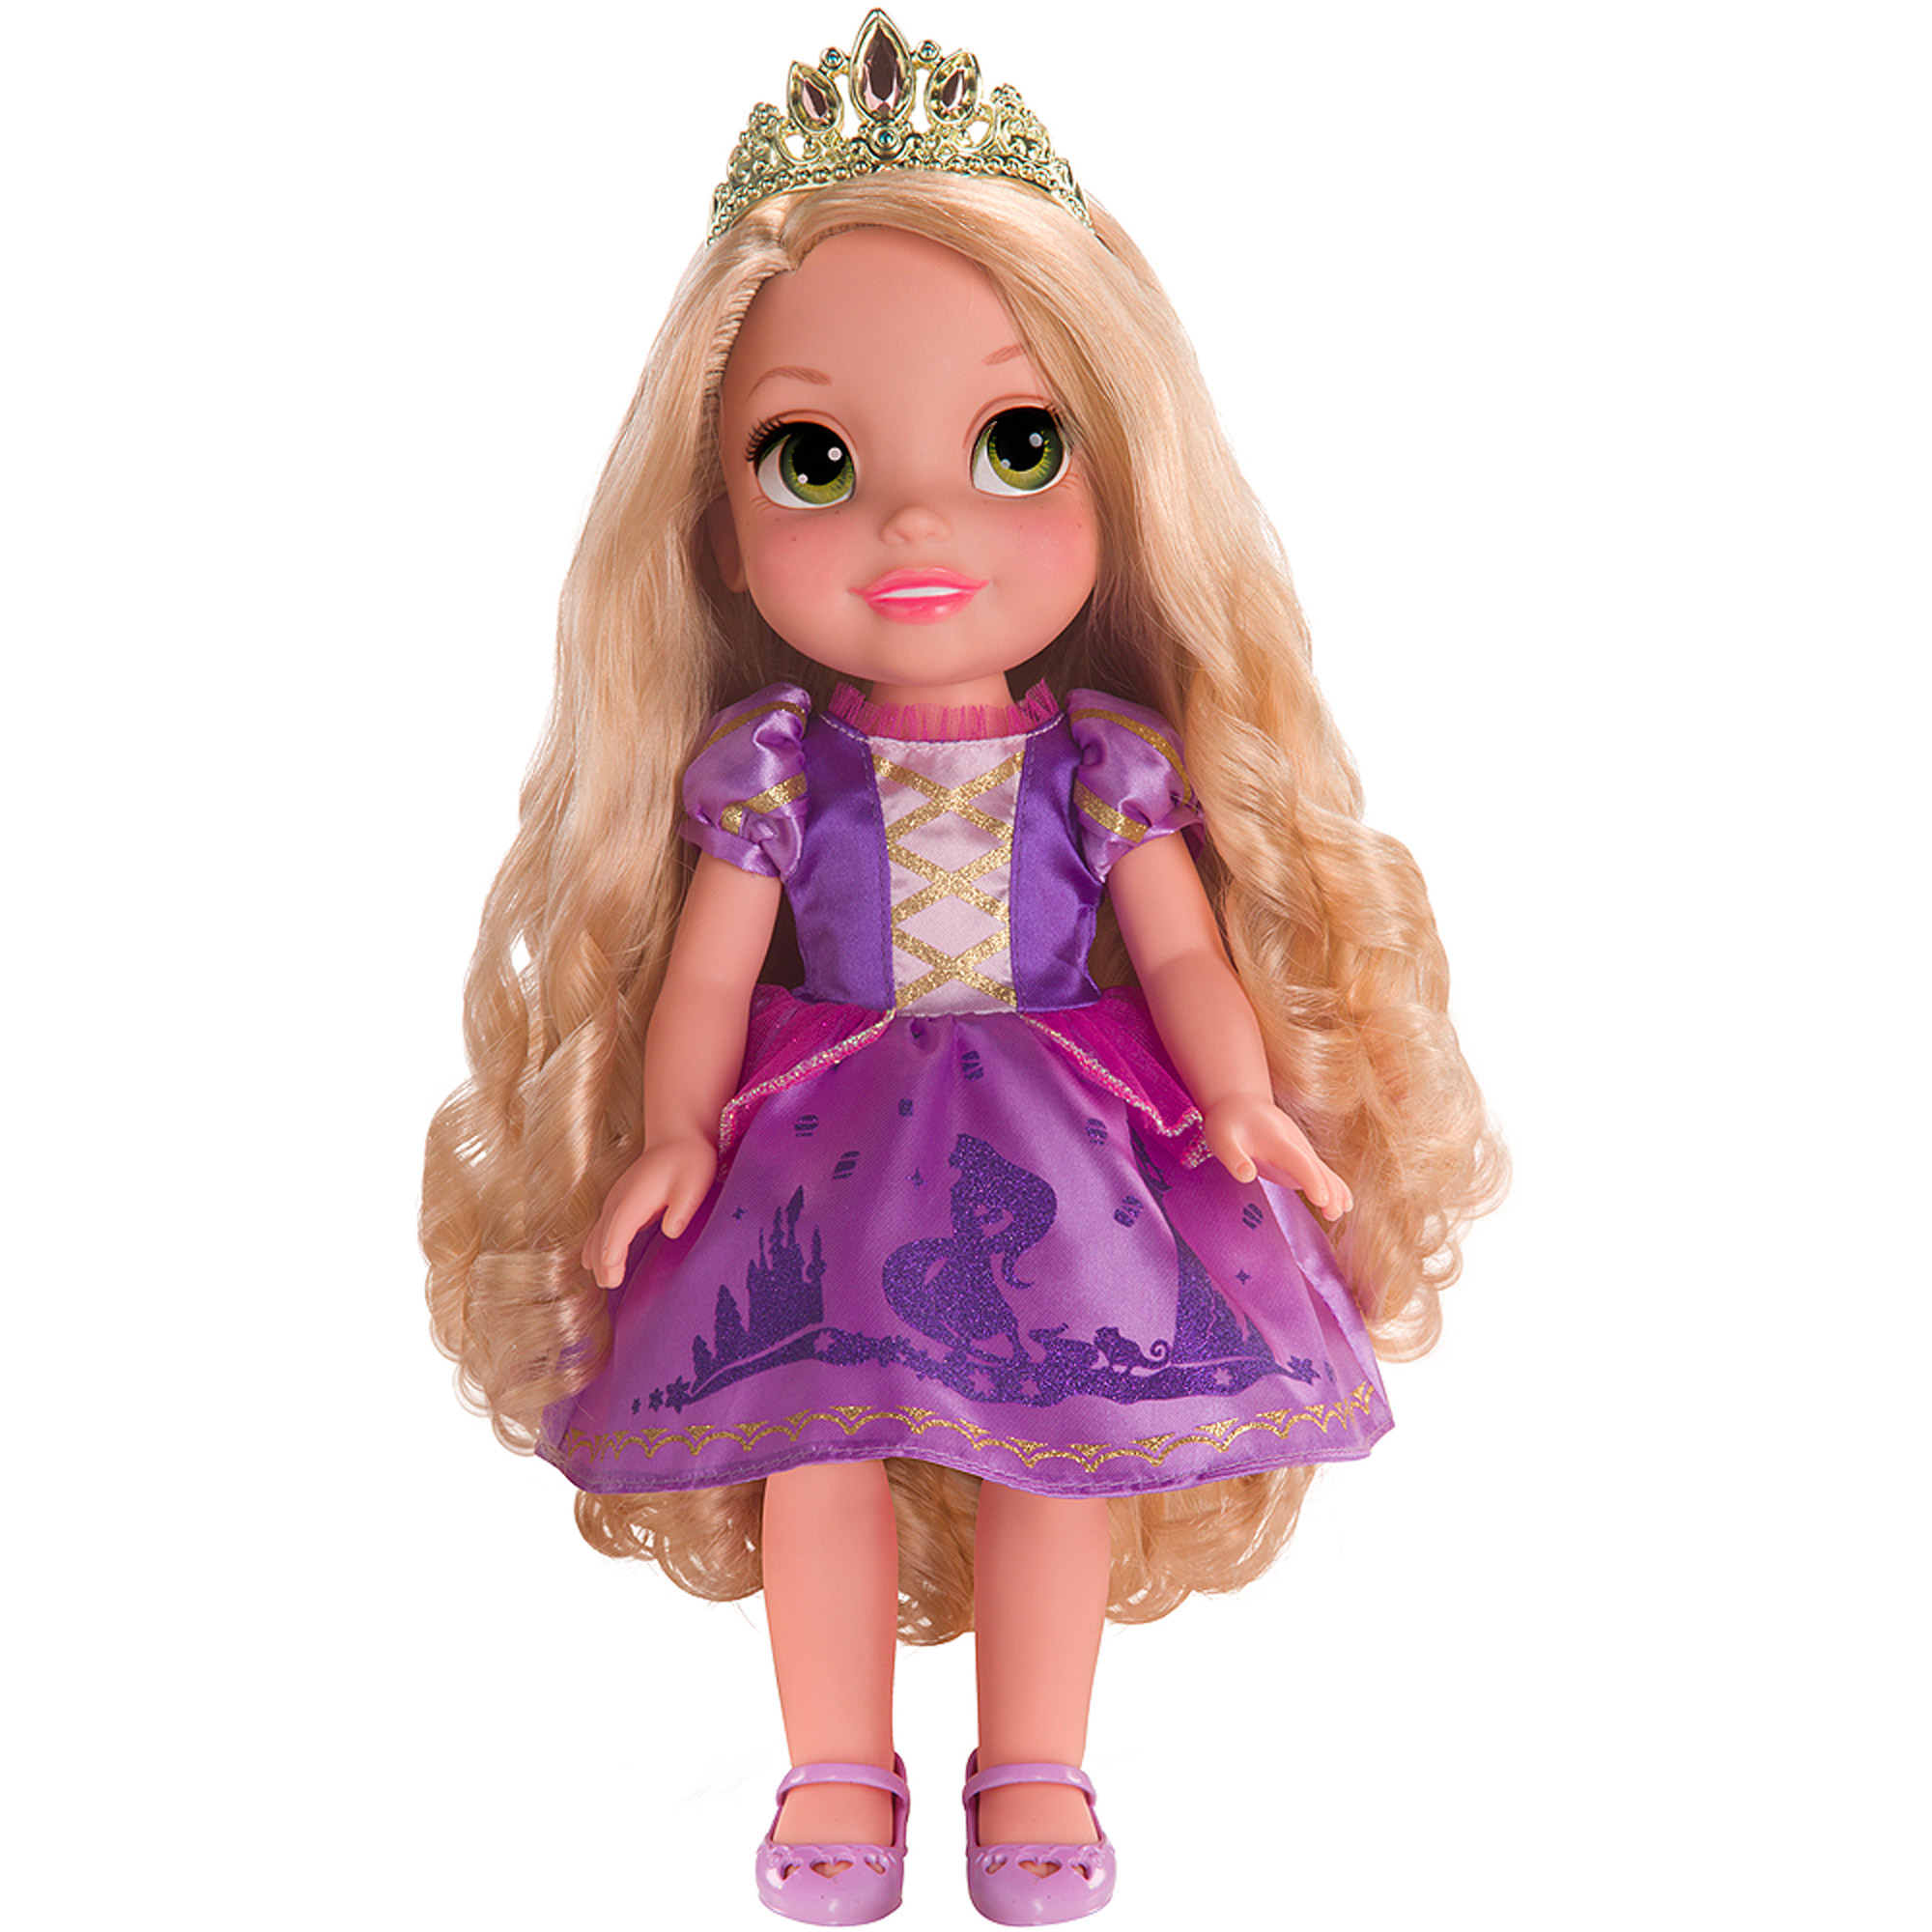 Toys For Kids Girls : Disney princess toddler rapunzel walmart